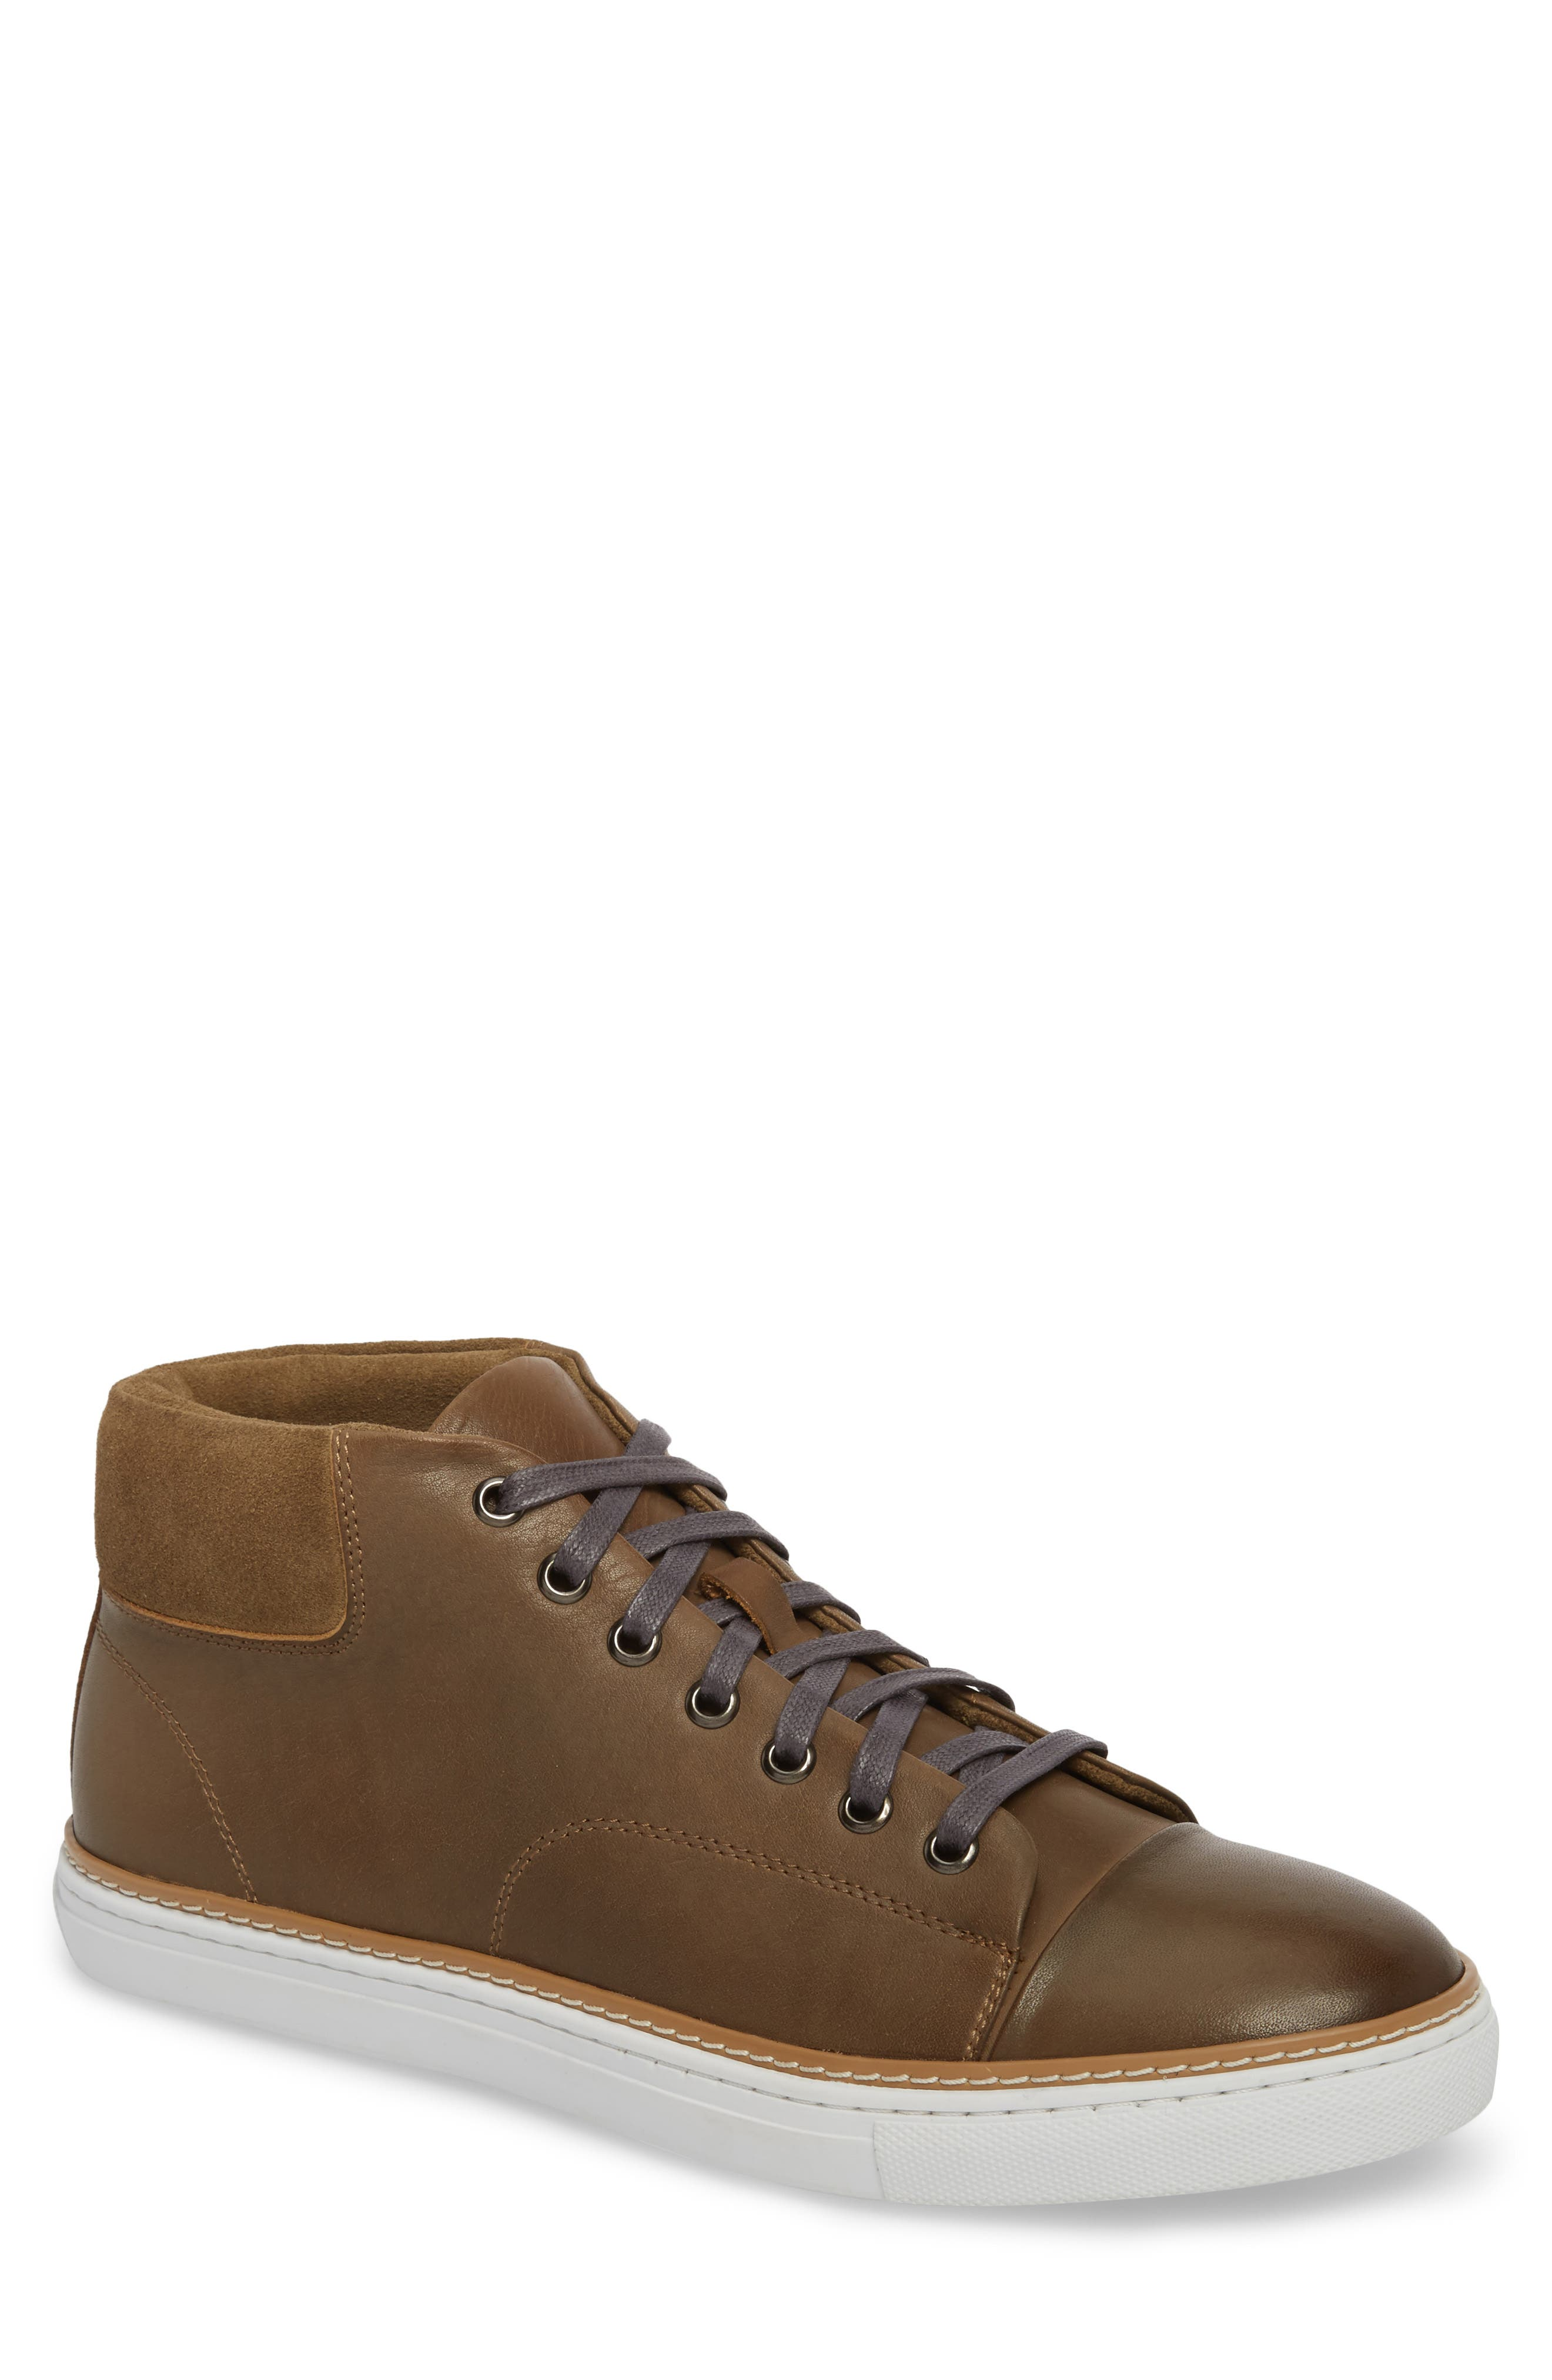 Grove Sneaker,                         Main,                         color, Tan Leather